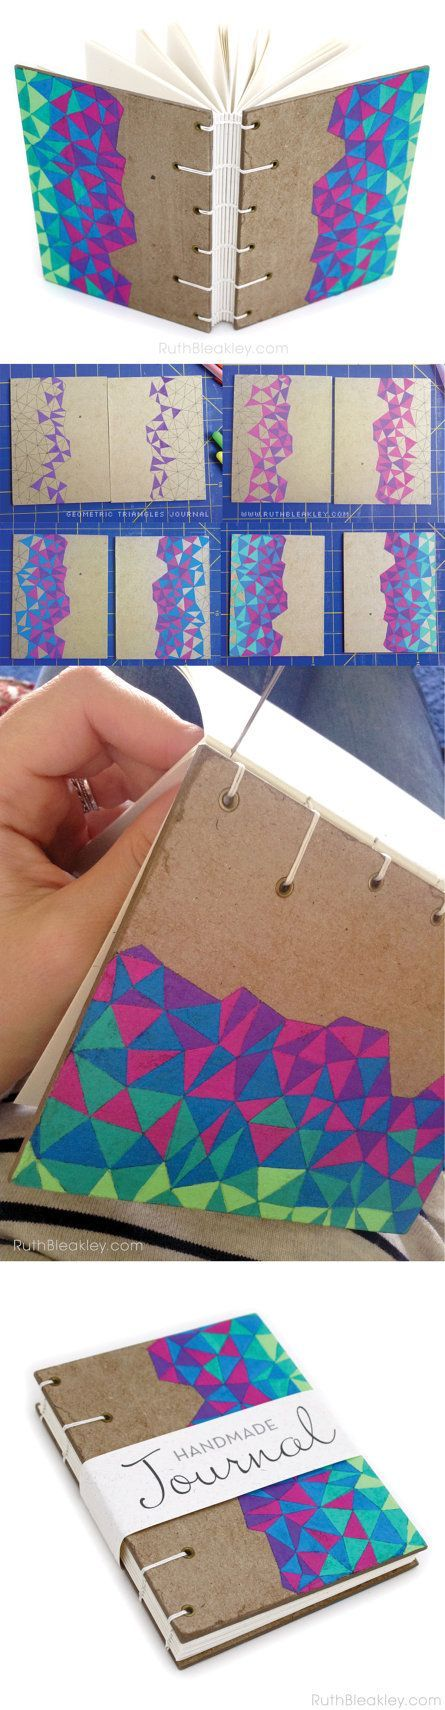 Coptic Stitch Journal with hand-drawn geometric triangles by Ruth Bleakley on Etsy